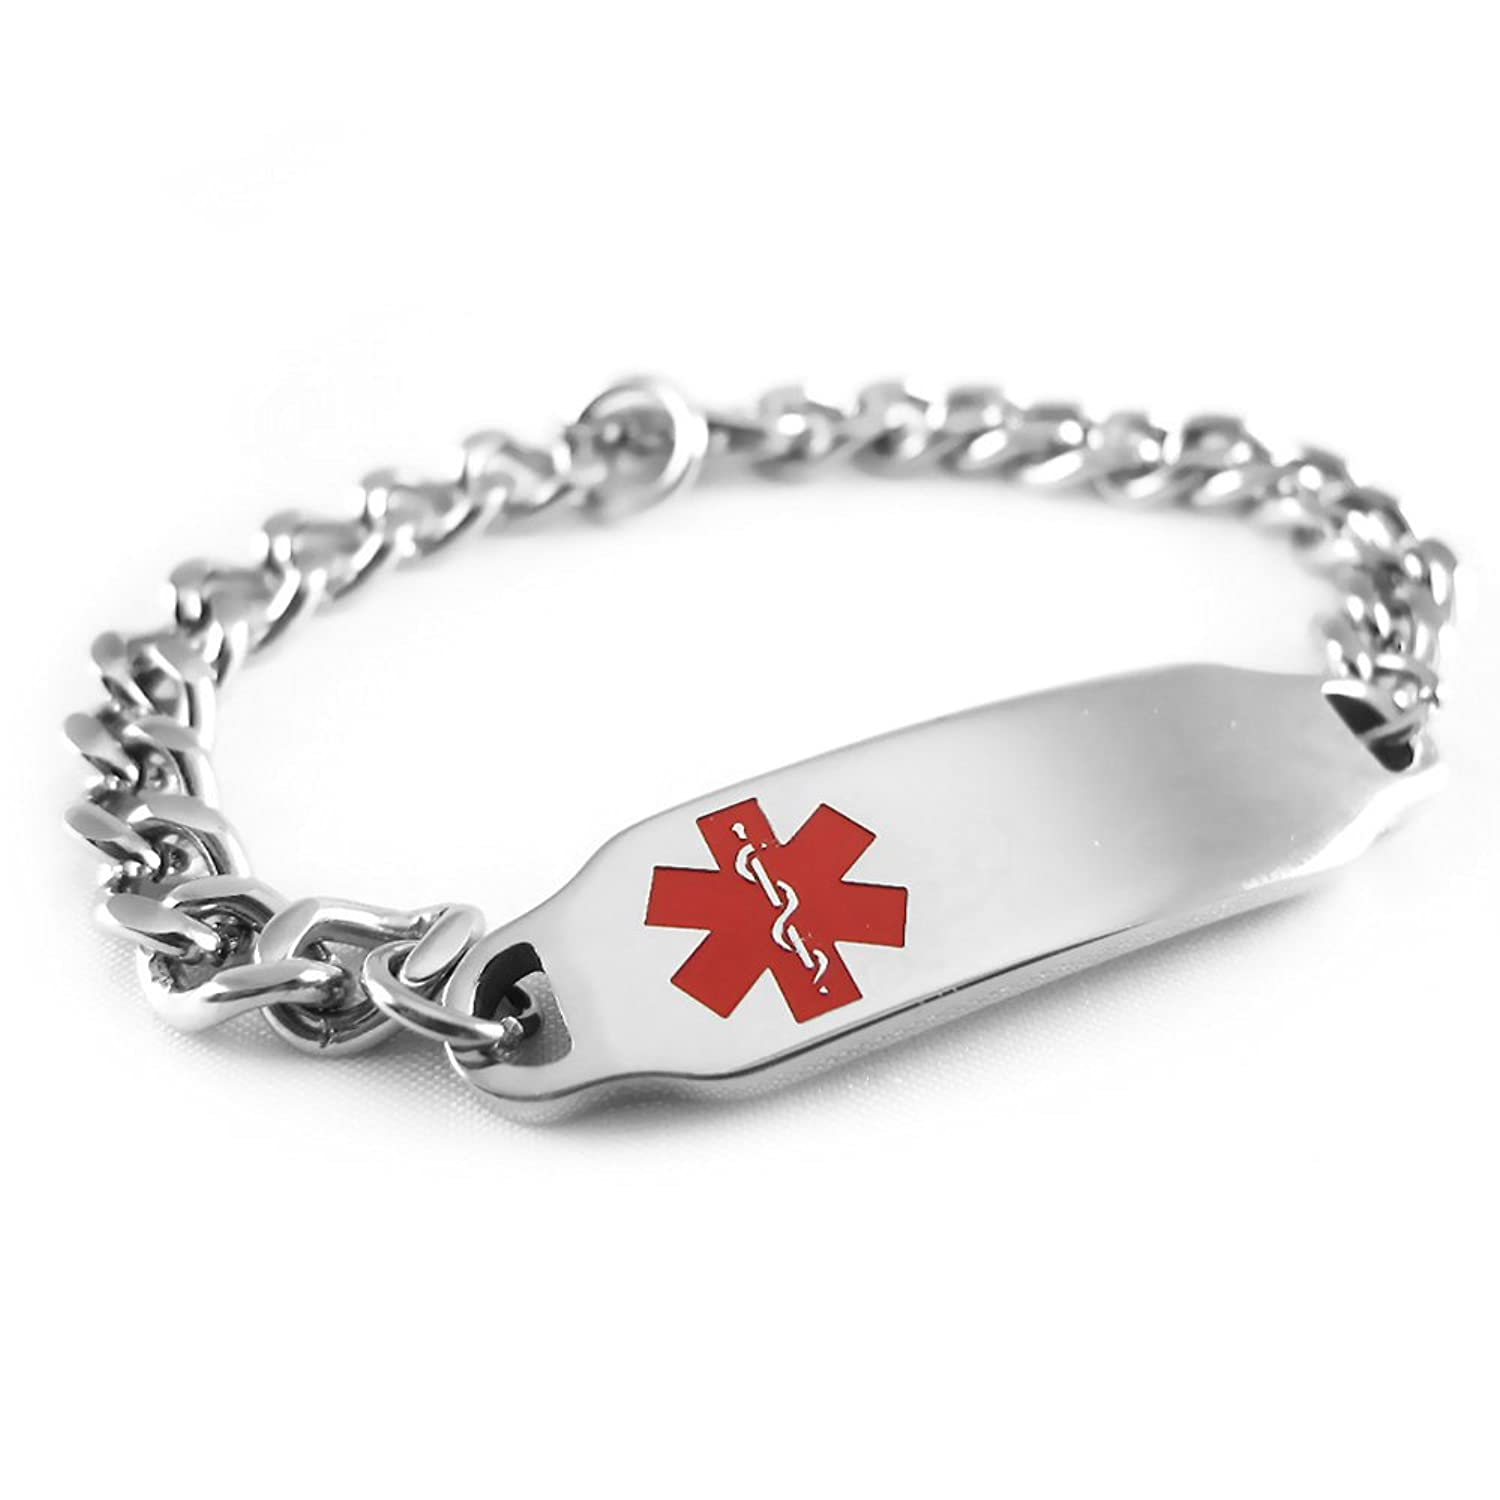 jewelry alert type engraving uk bracelet bracelets medical diabetes